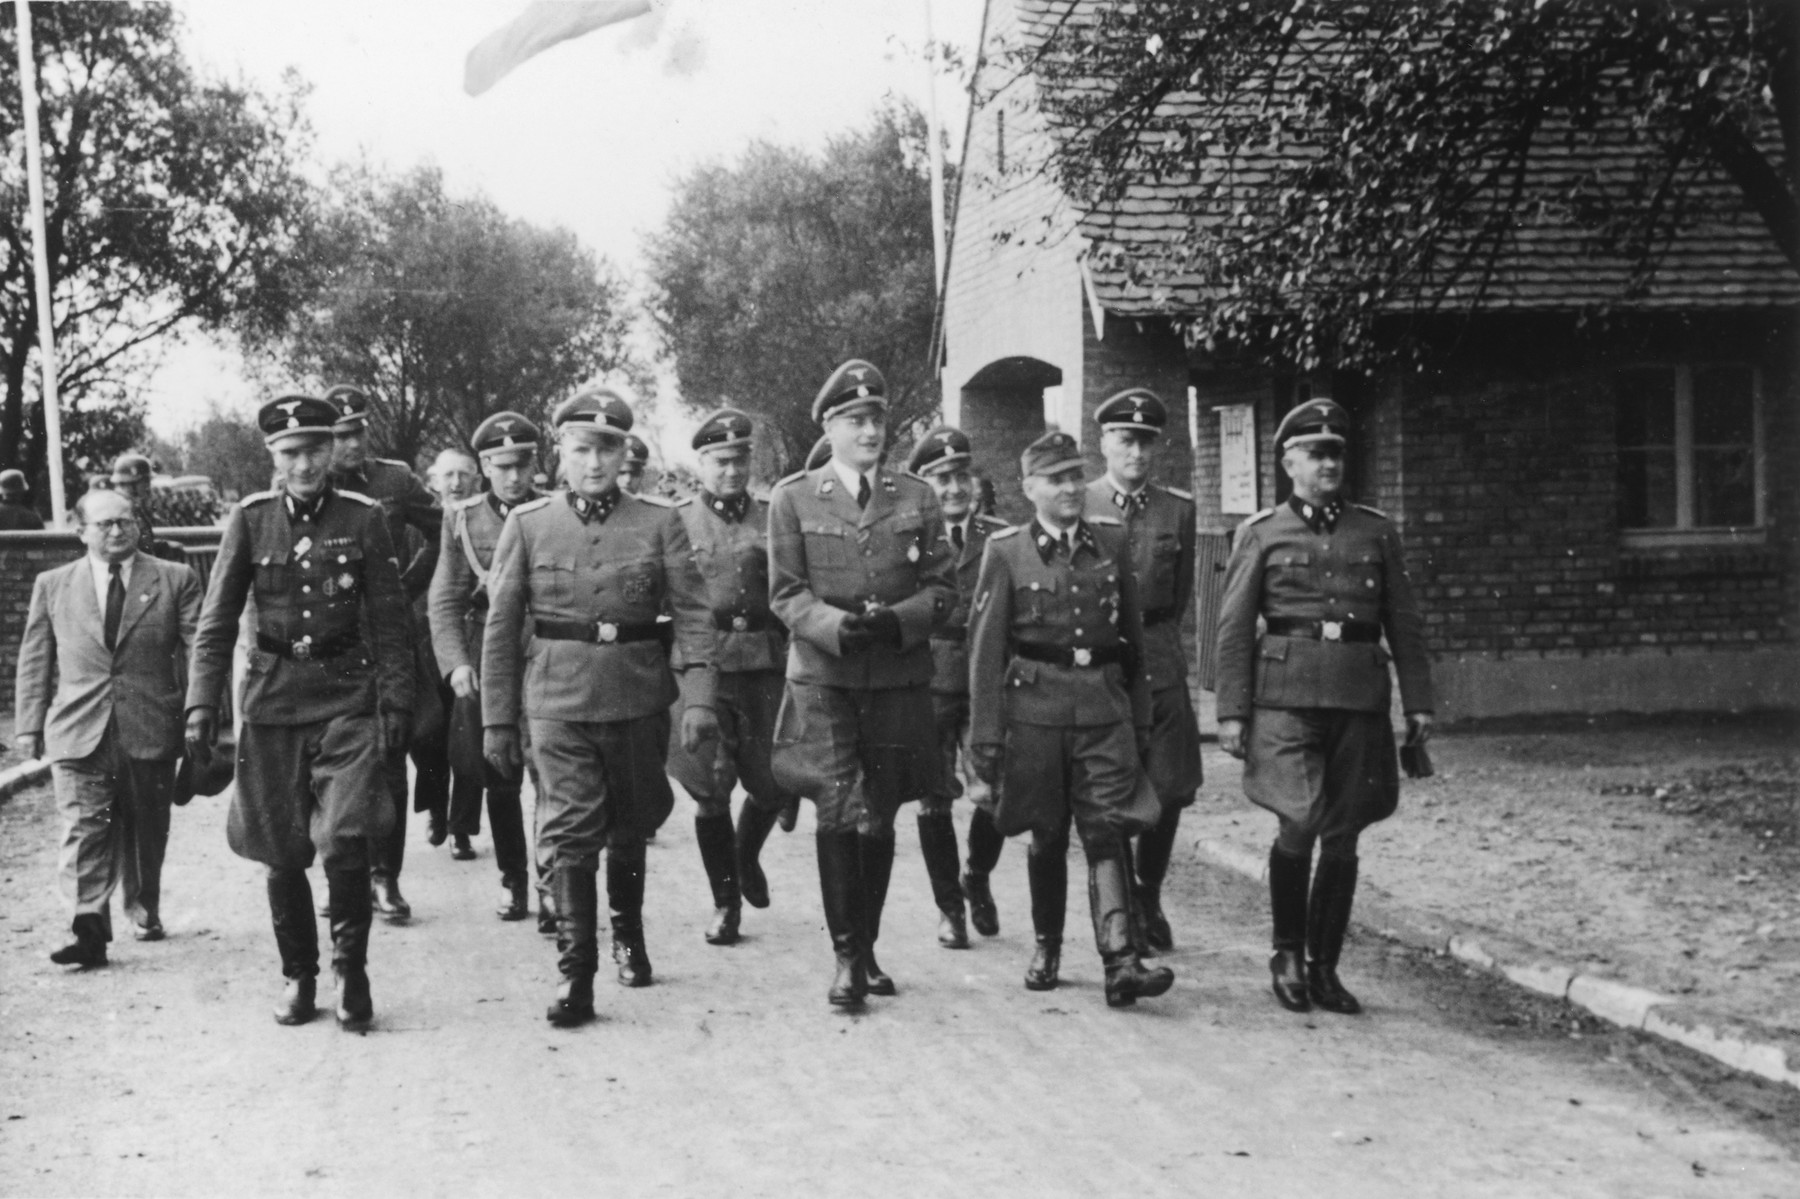 """Nazi officers walk towards the dedication of the new SS hospital in Auschwitz.  The original caption reads """"Besichtigung"""" (tour).  Standing in front are Dr. Carl Clauberg, Dr. Enno Lolling,  Commandant Richard Baer, Dr. Eduard Wirths, Rudolf Hoess and Karl Moeckel.  Also pictured in the second row are Josef Kramer, Karl Hoecker, and Karl Bischoff. Pictured in the very back is Johannes Paul Goebel."""